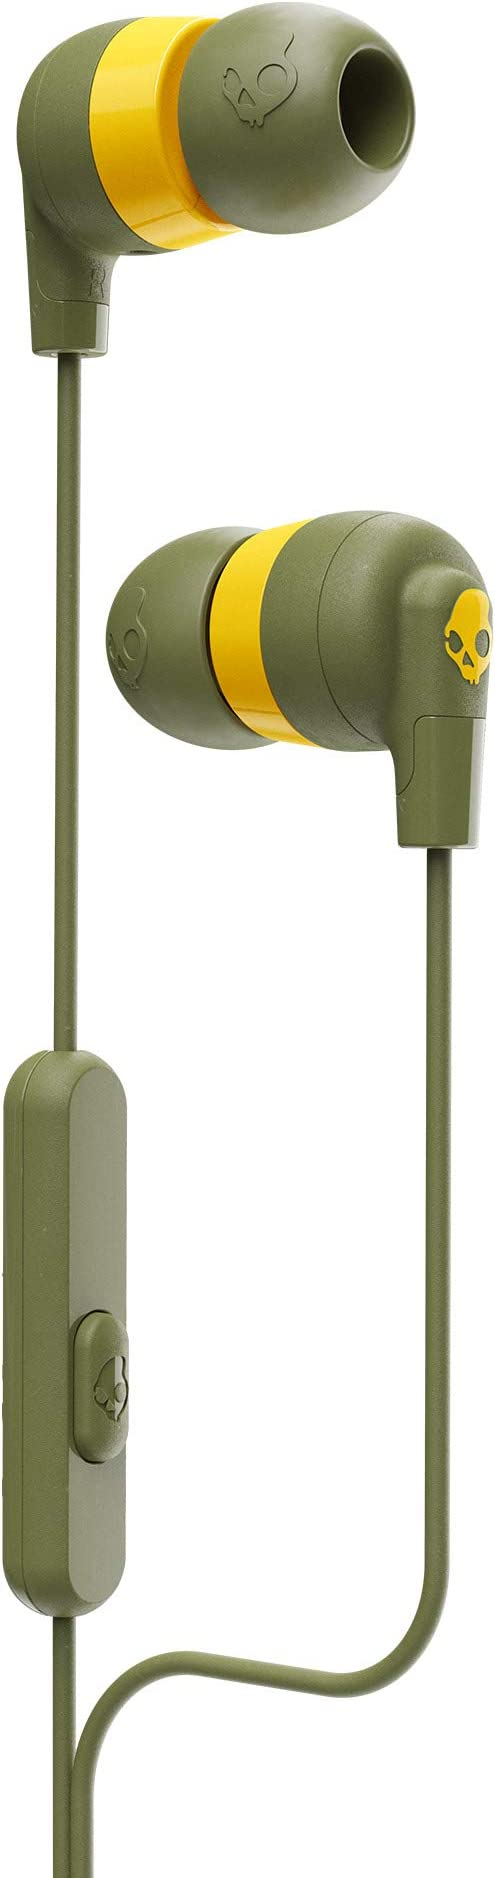 Skullcandy Ink'd Plus In-Ear Earbud - Olive